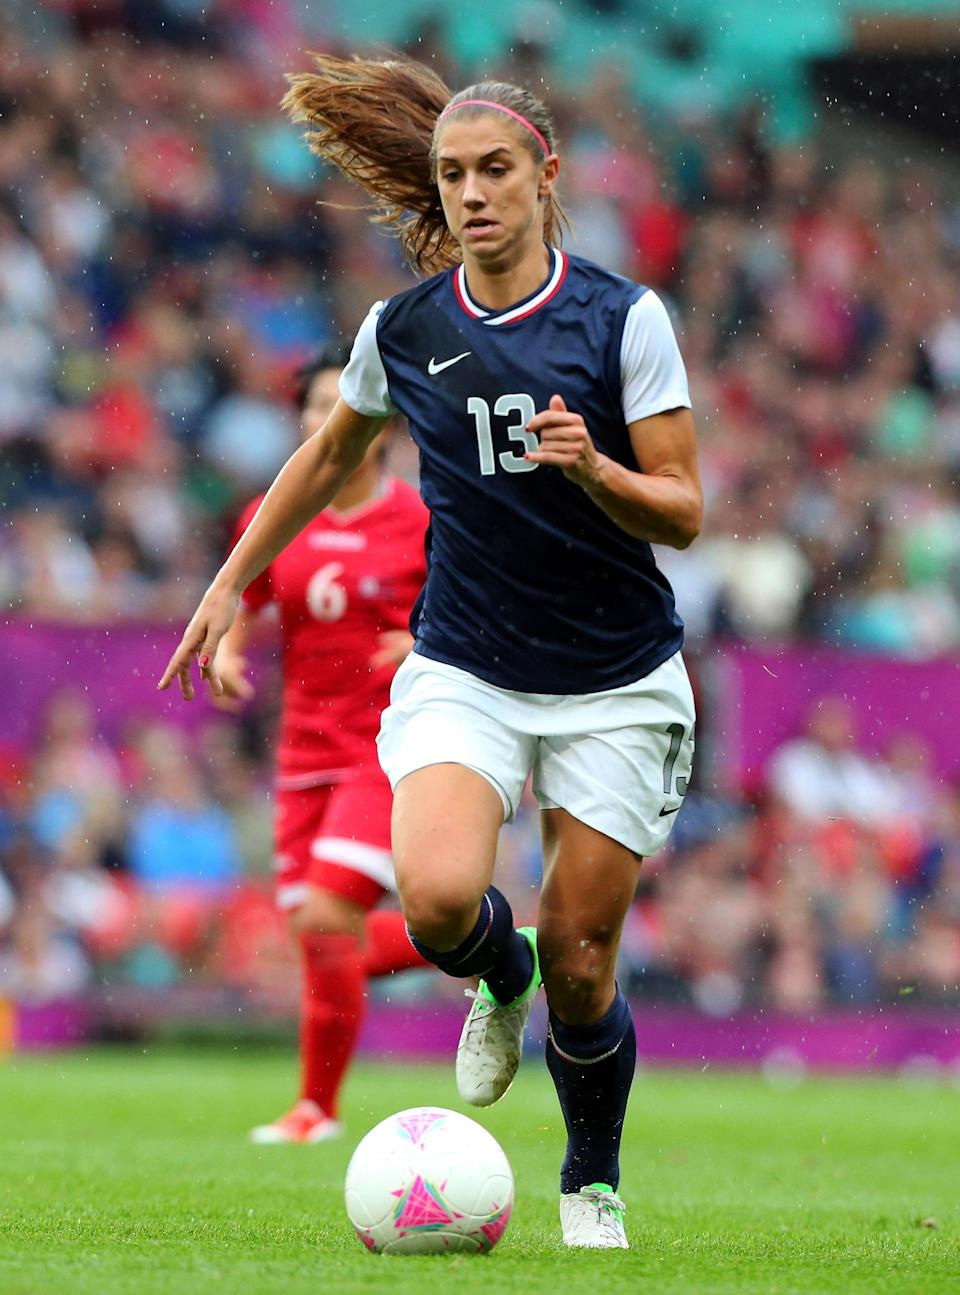 Alex Morgan of United States runs with the ball during the Women's Football first round Group G match between the United States and DPR Korea,on Day 4 of the London 2012 Olympic Games at Old Trafford on July 31, 2012 in Manchester, England. (Photo by Stanley Chou/Getty Images)